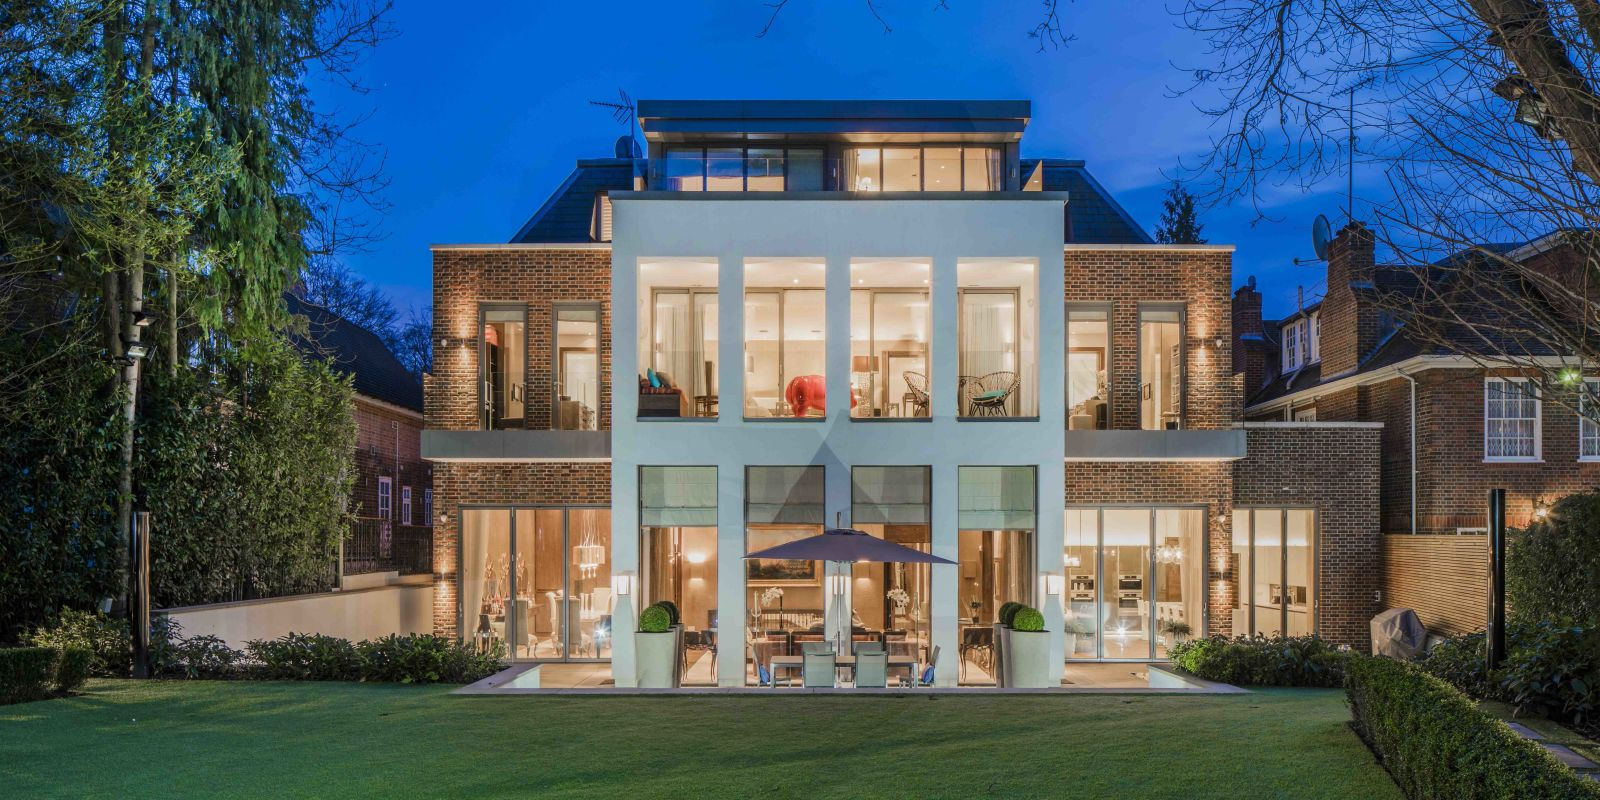 Kelly hoppen designed this extravagant highgate property House beautiful com kitchens